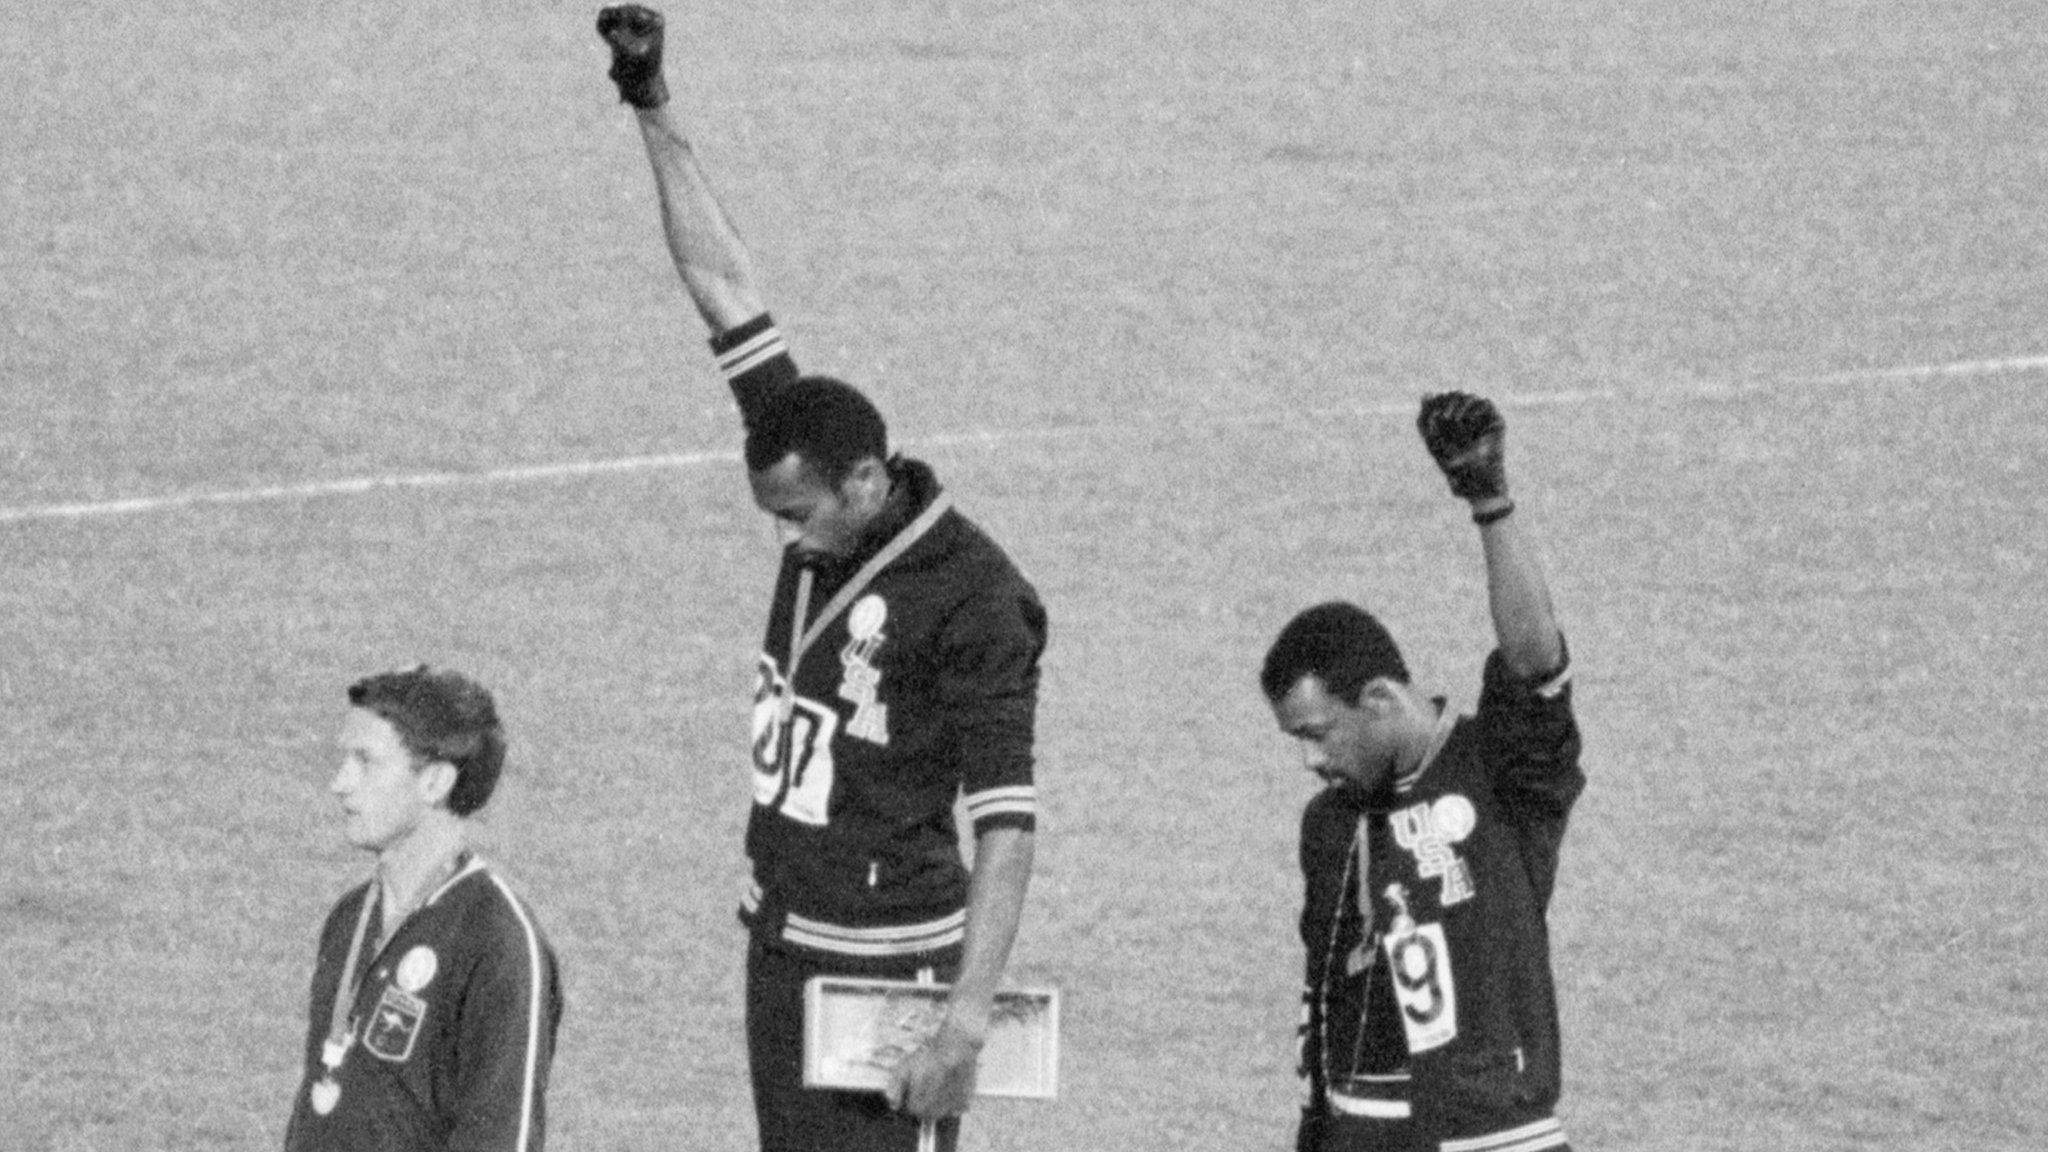 'I cried when Kaepernick took the knee' - Smith reflects on Black Power salute 50 years on from Mexico